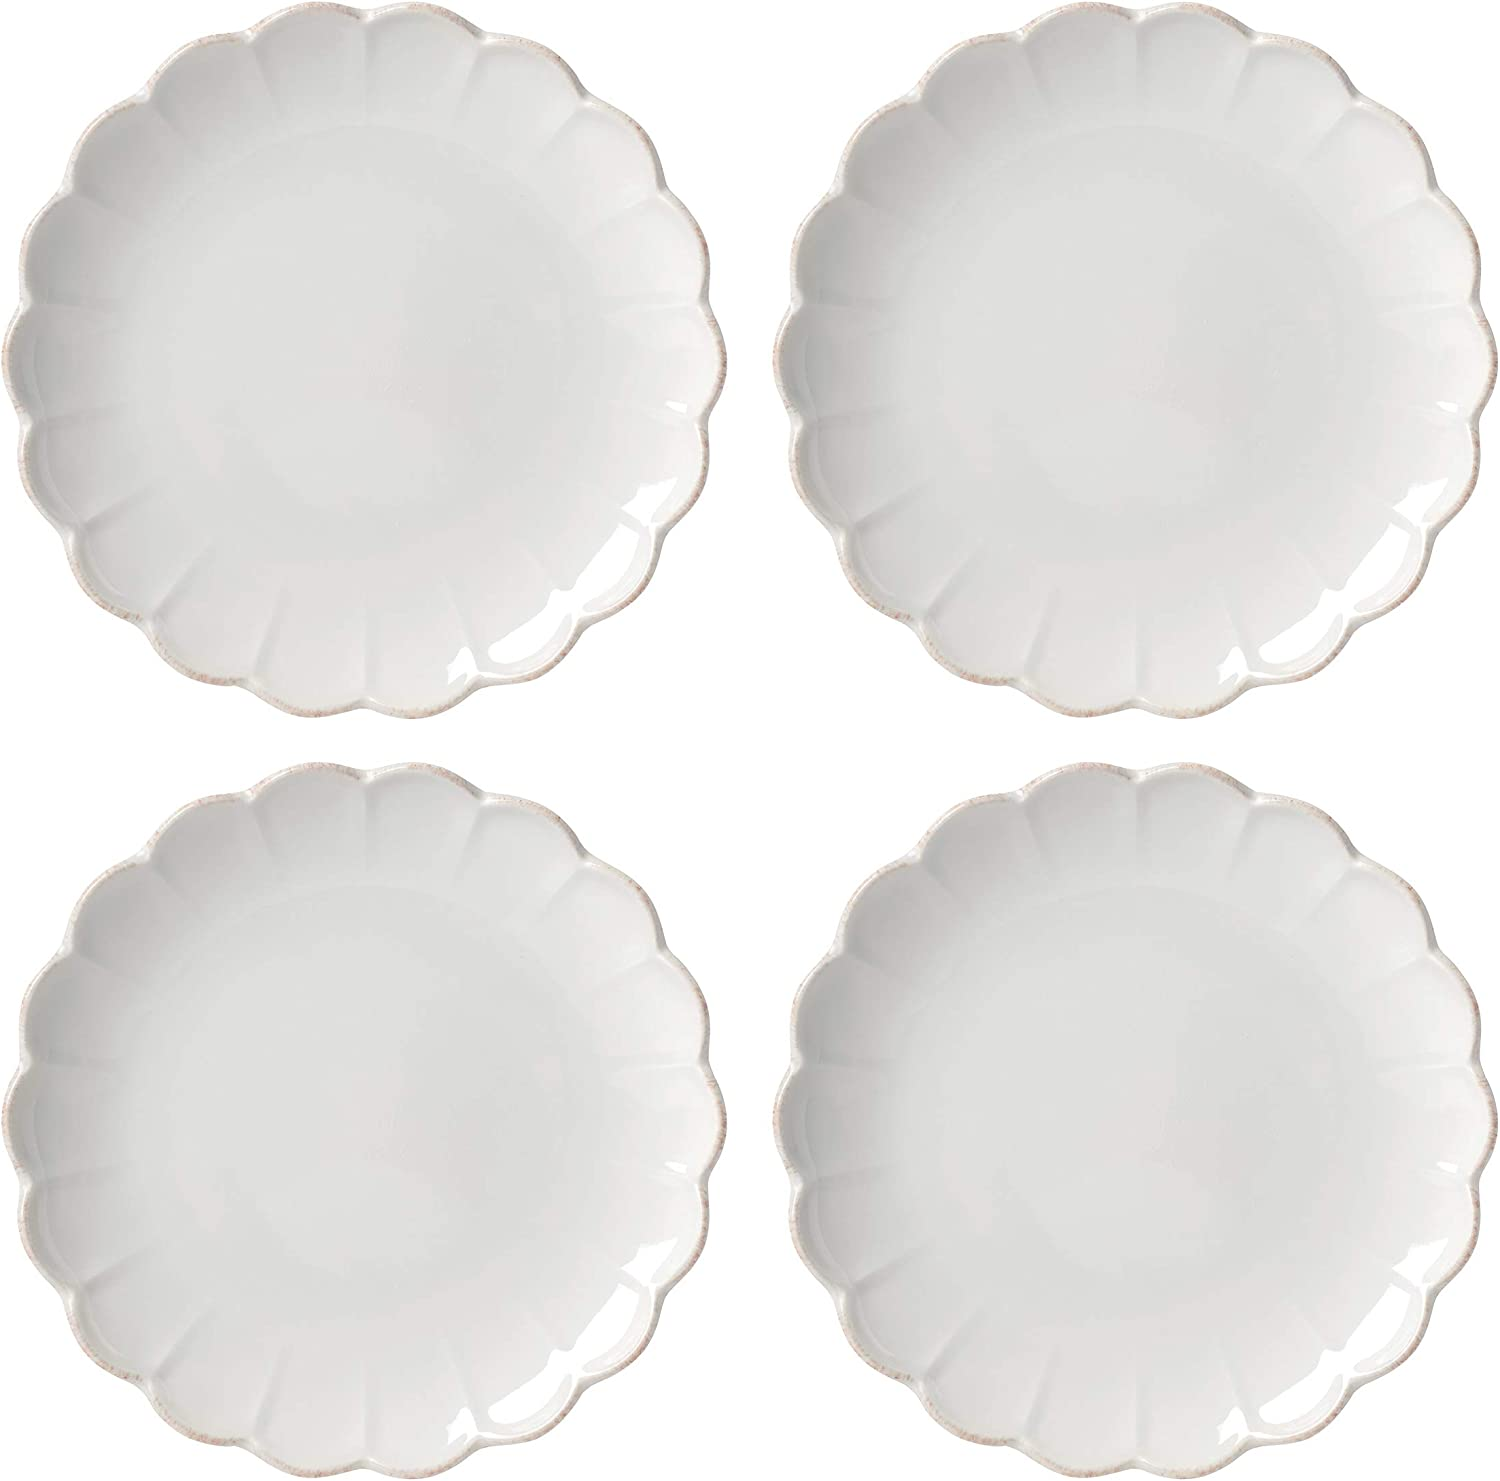 Lenox French Perle 5% OFF Scallop 4-Piece Accent Wh LB Plate San Jose Mall 4.60 Set